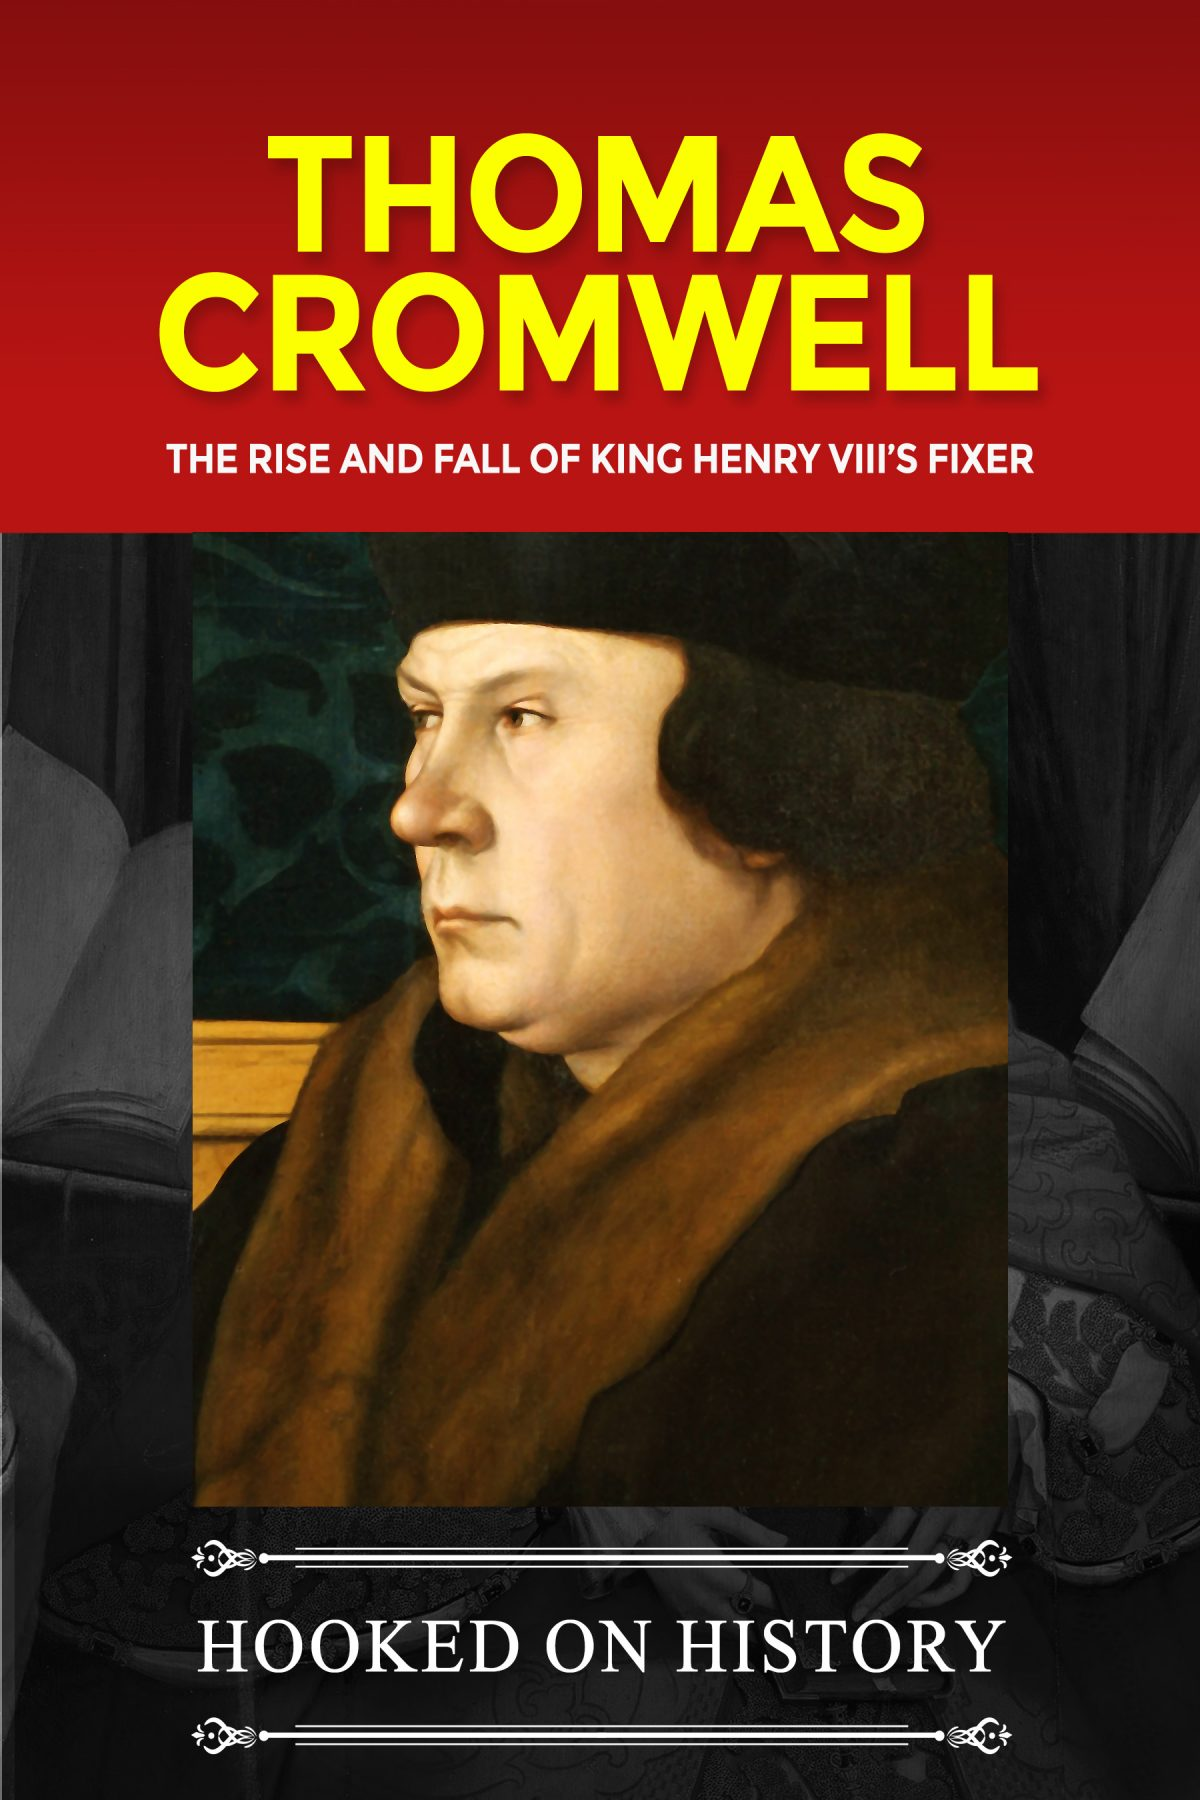 Thomas Cromwell One-Hour Biography